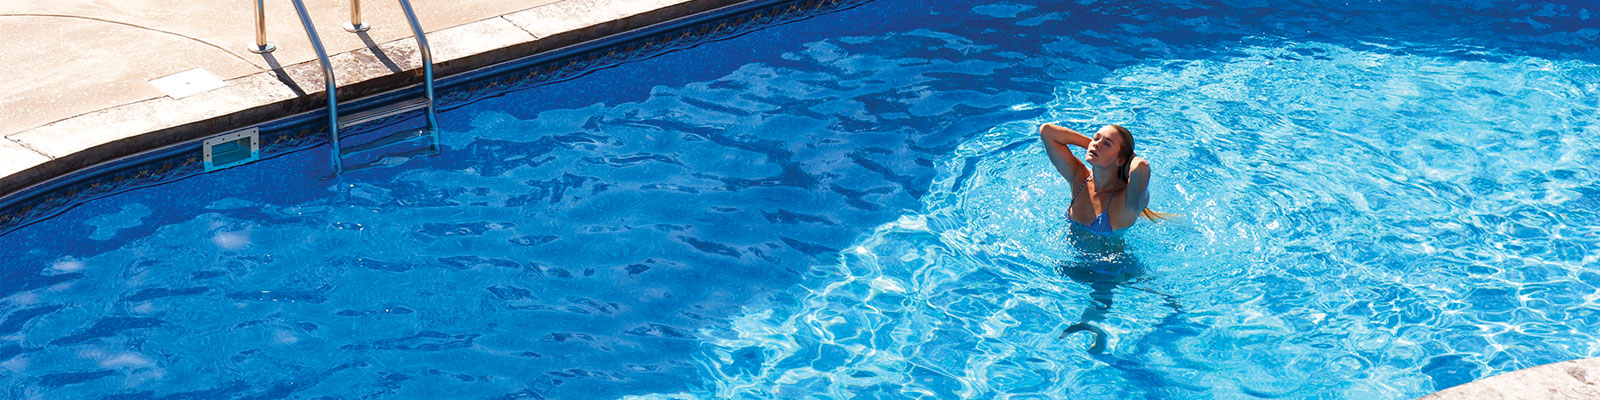 Swimming Pool Dealers in Grand Rapids and Holland Zagers - ZagersPoolSpa.com